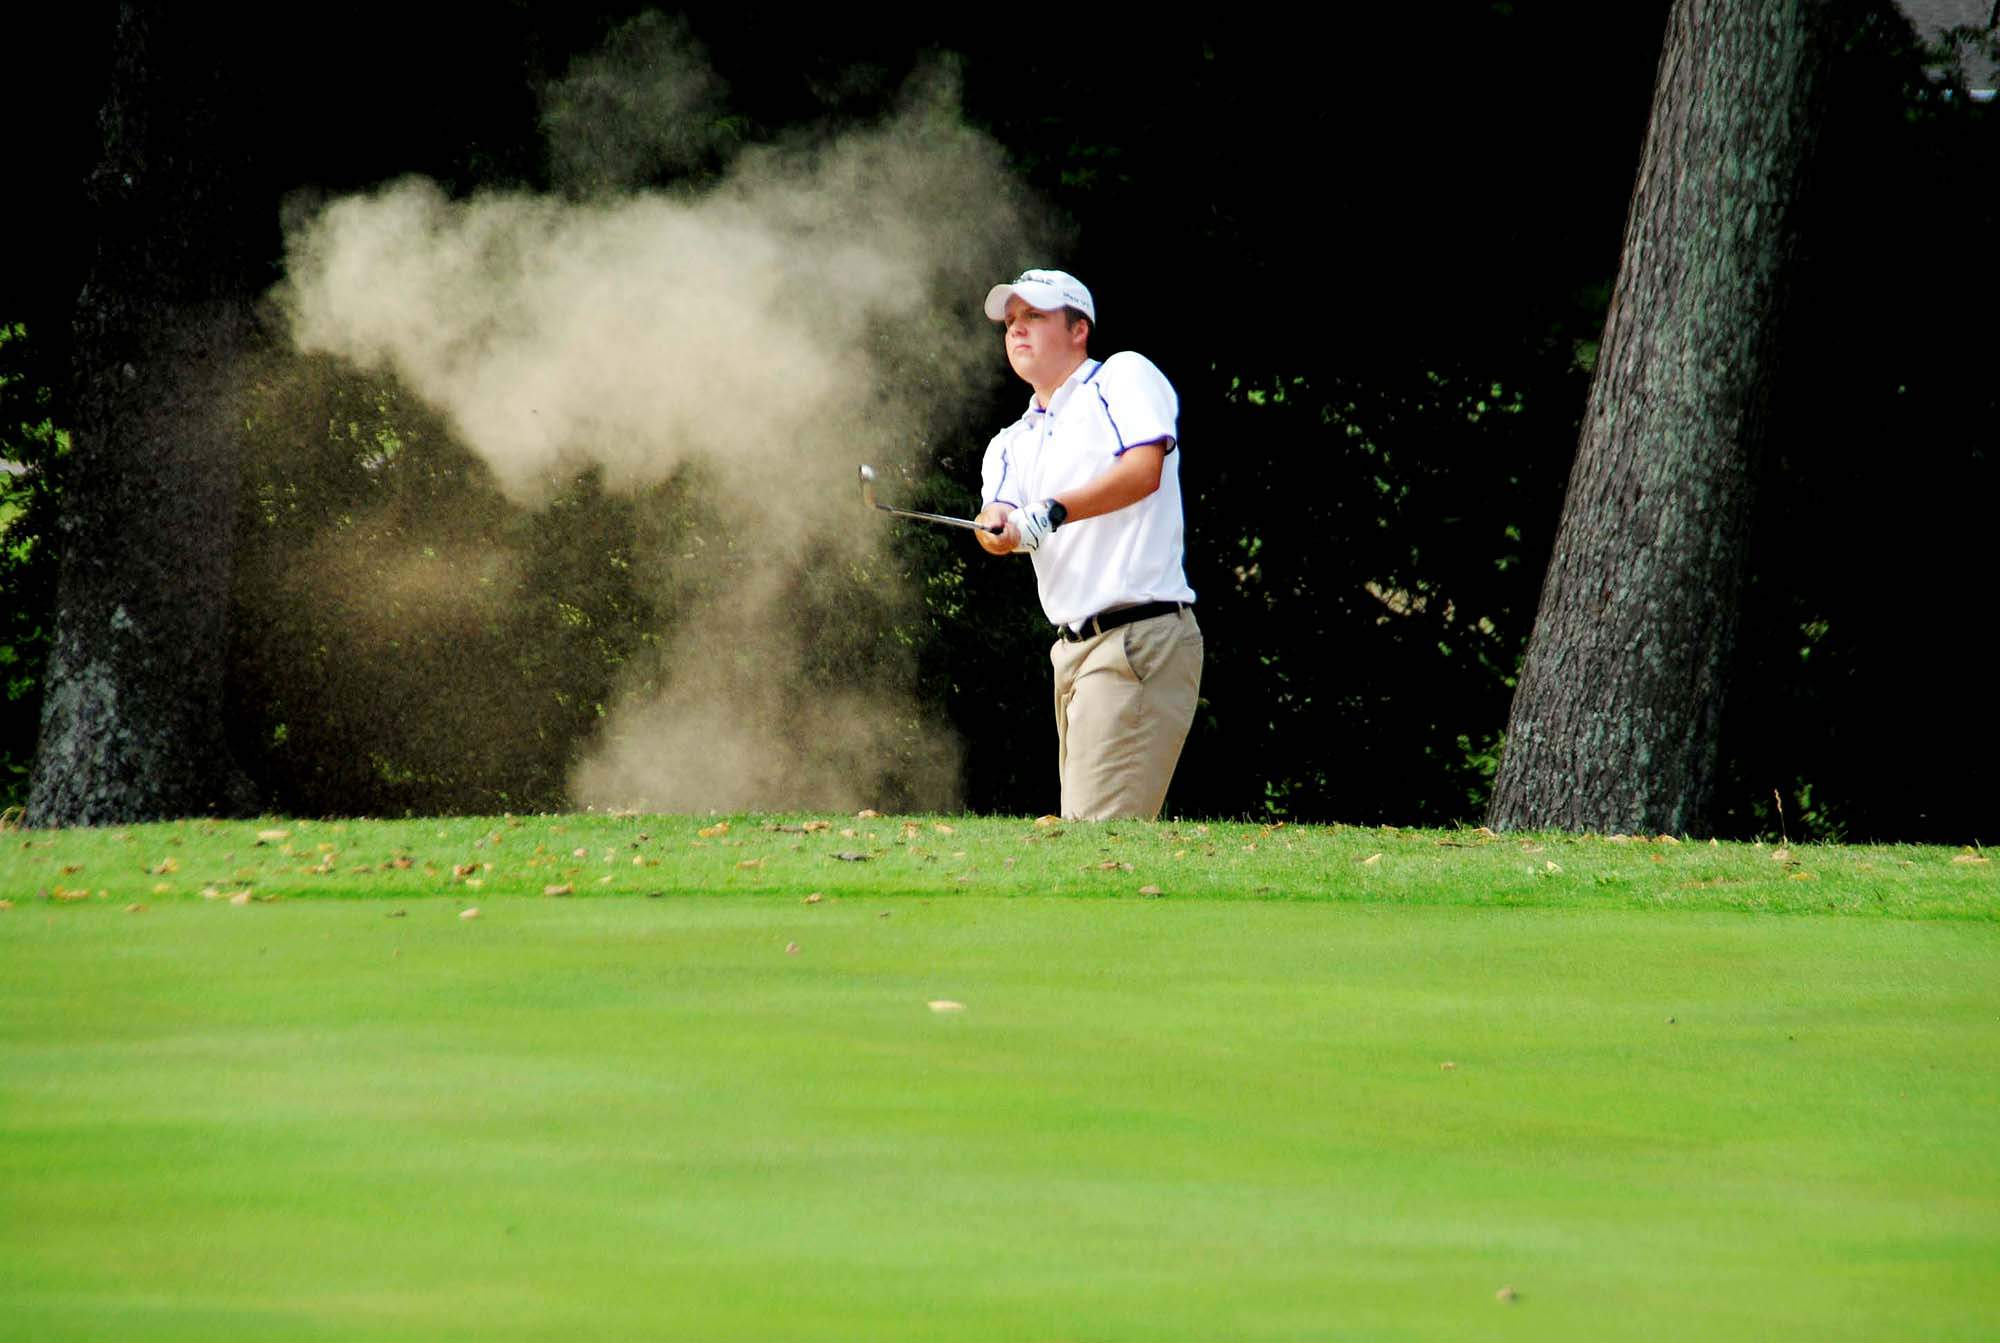 Harrisburg's Camden Schiff shot a 39 in a match earlier this week at Shawnee Hills Country Club against Mt. Carmel and Massac County. Schiff finished third overall in the triangular match.